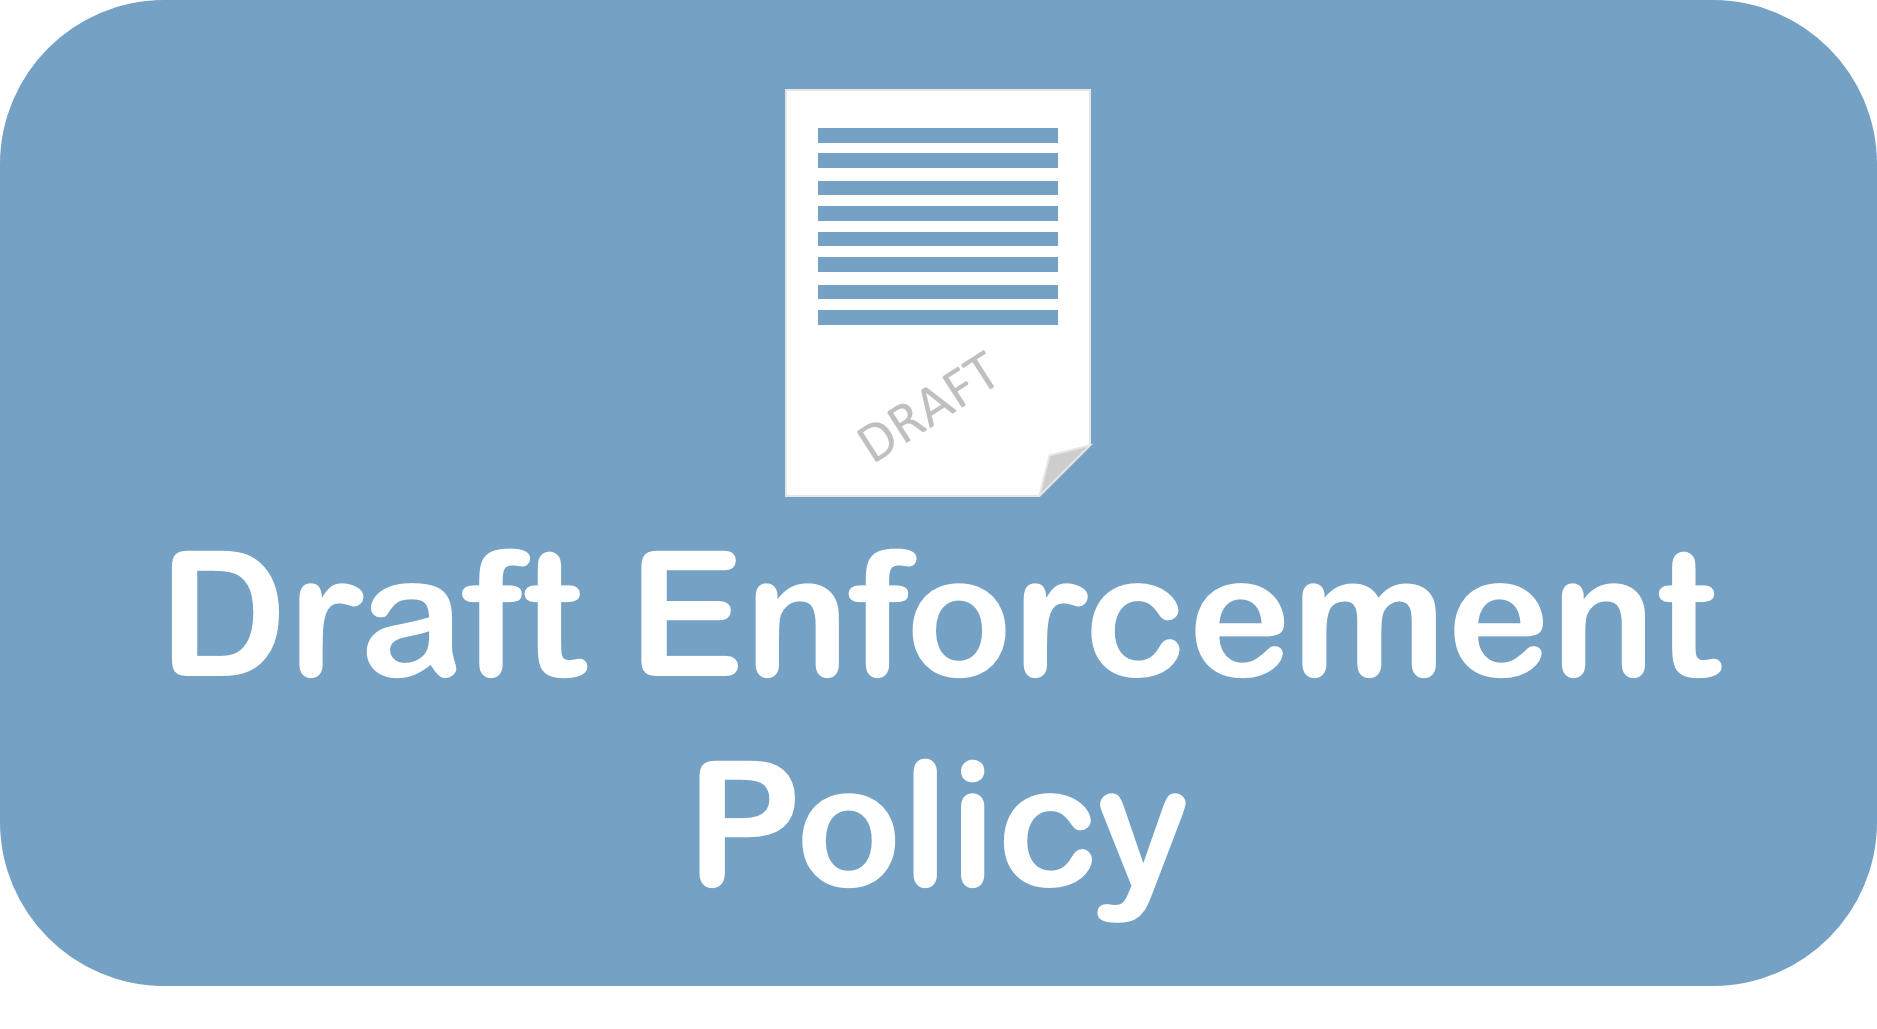 Draft Enforcement Policy